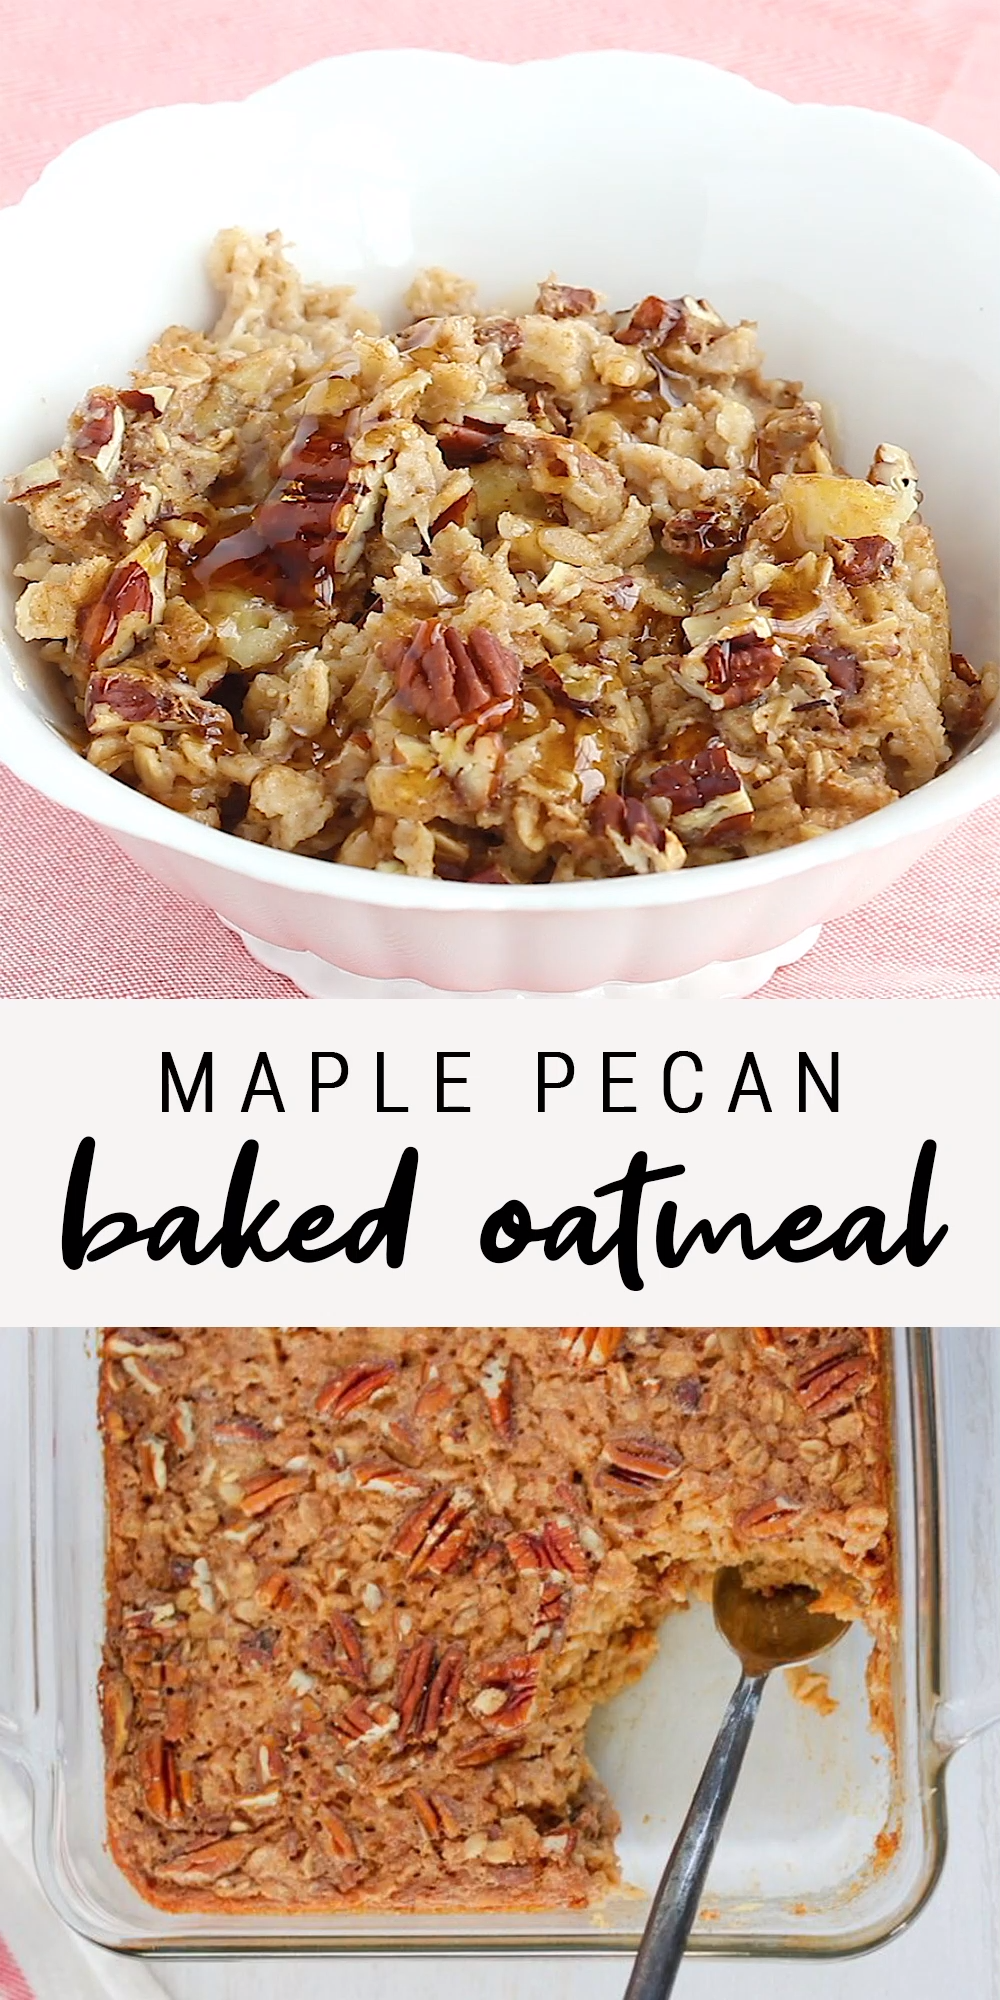 Maple Pecan Baked Oatmeal